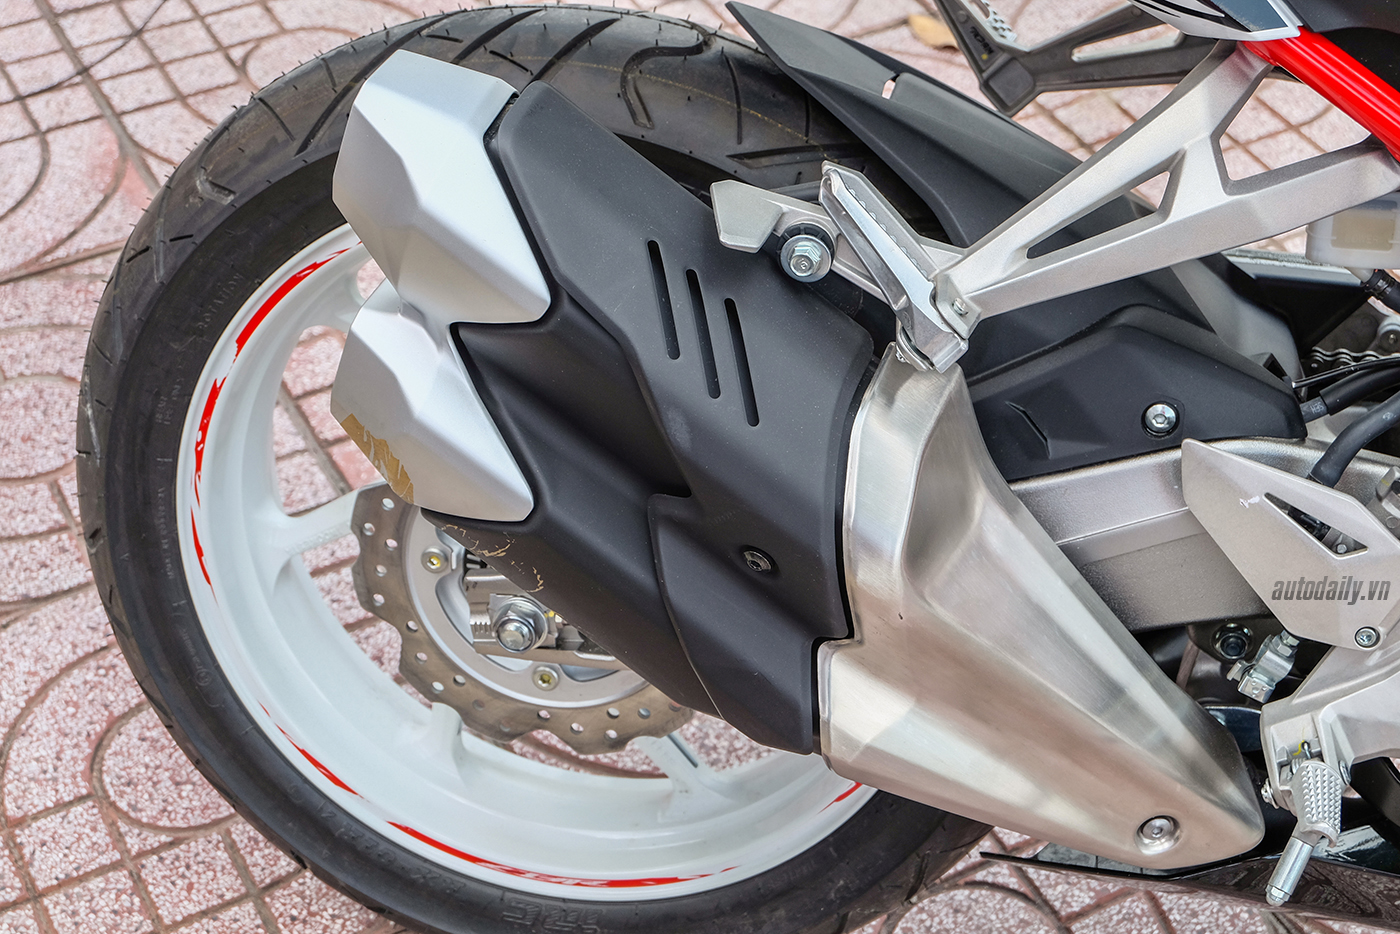 honda-cbr250rr-the-art-of-kabuki-2017-10.jpg